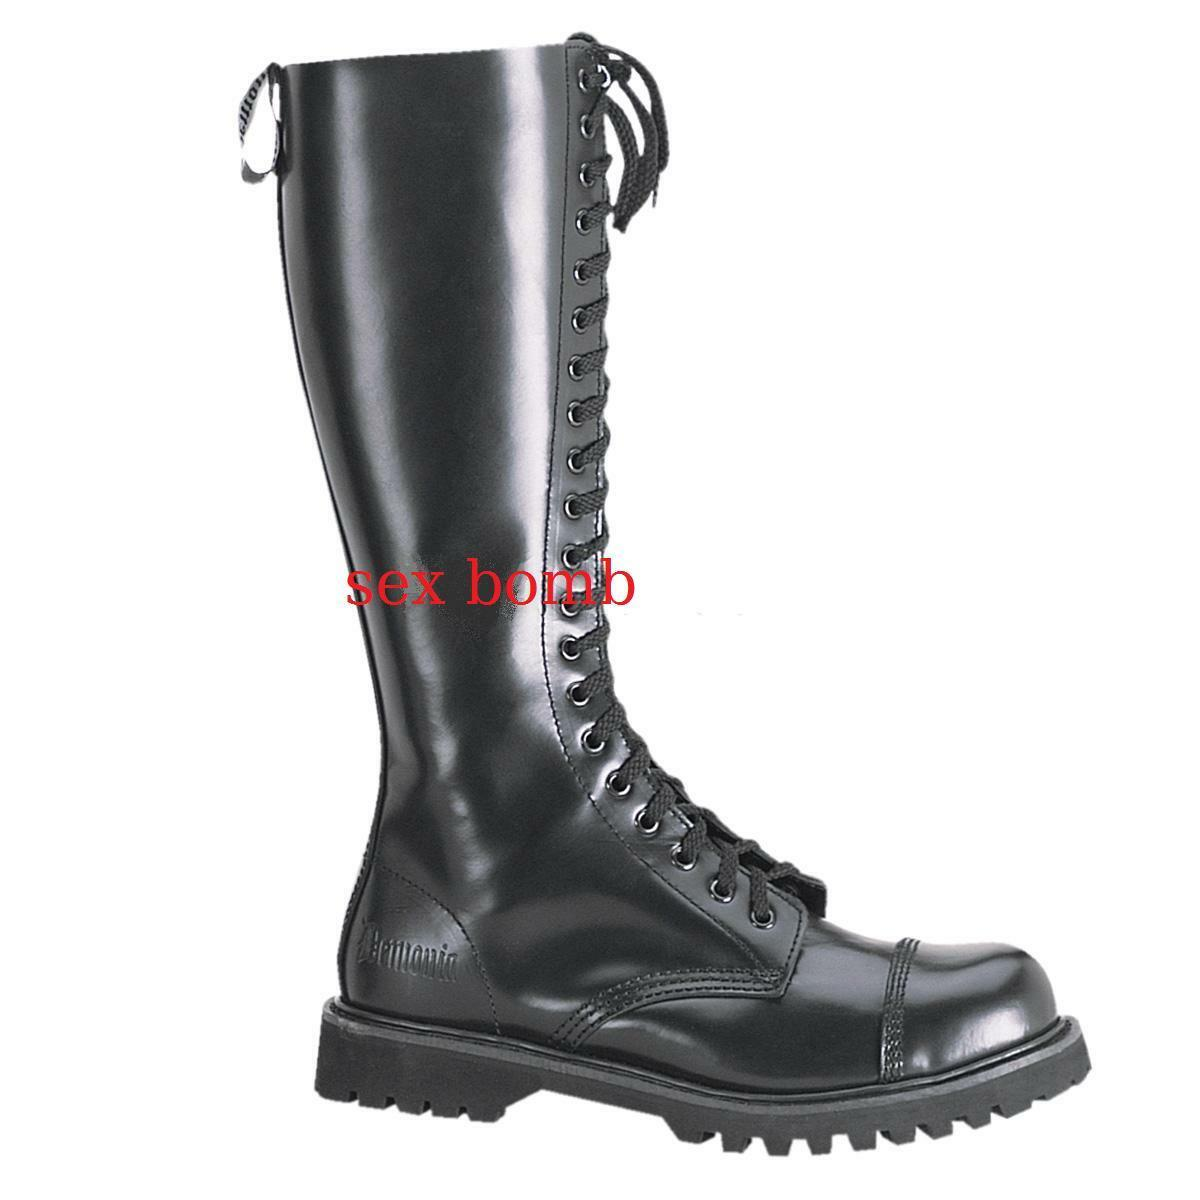 Boots LEATHER MEN laced heel rubber sole 3 cm from 36 to 45 BLACK rock unisex